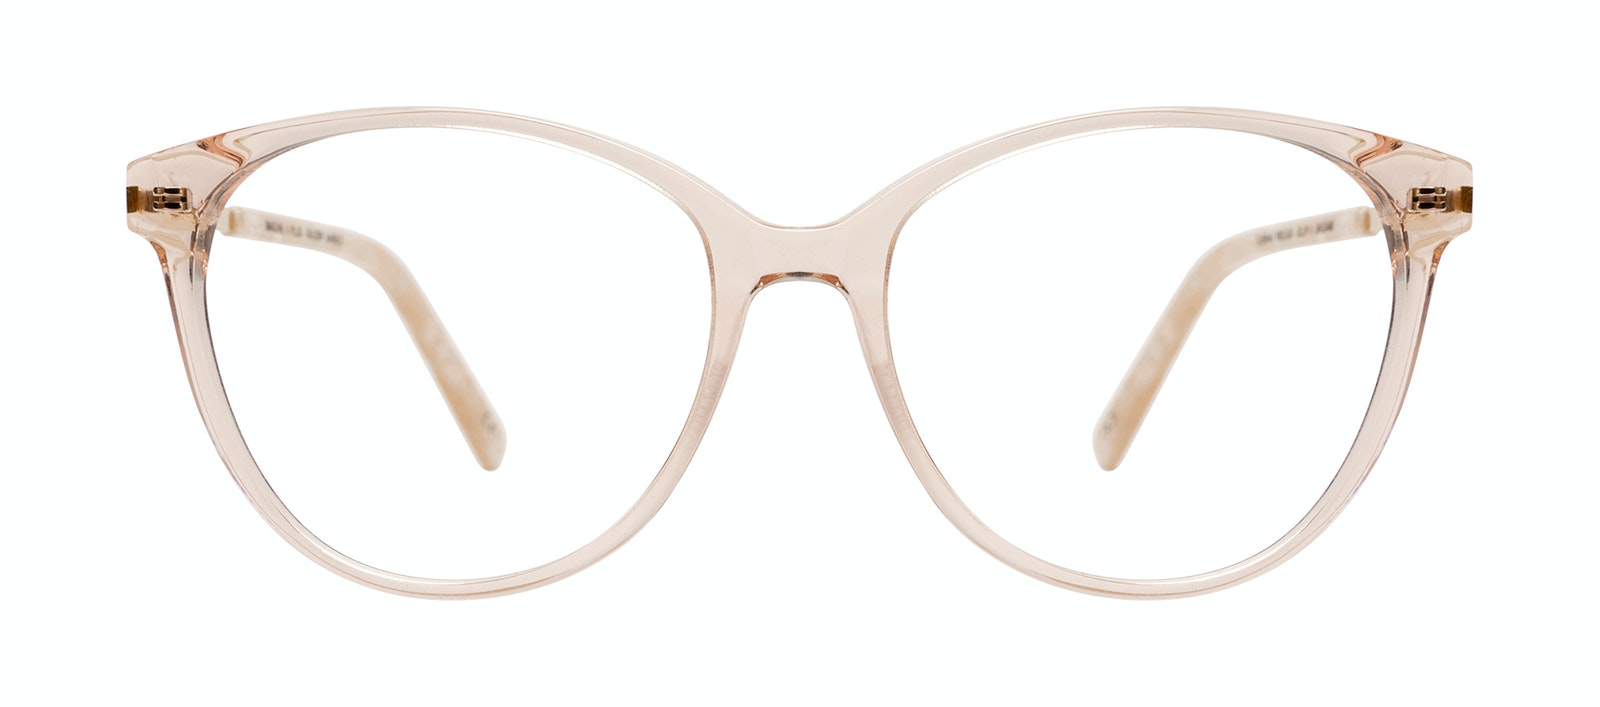 Affordable Fashion Glasses Cat Eye Eyeglasses Women Imagine II Plus Golden Marble Front